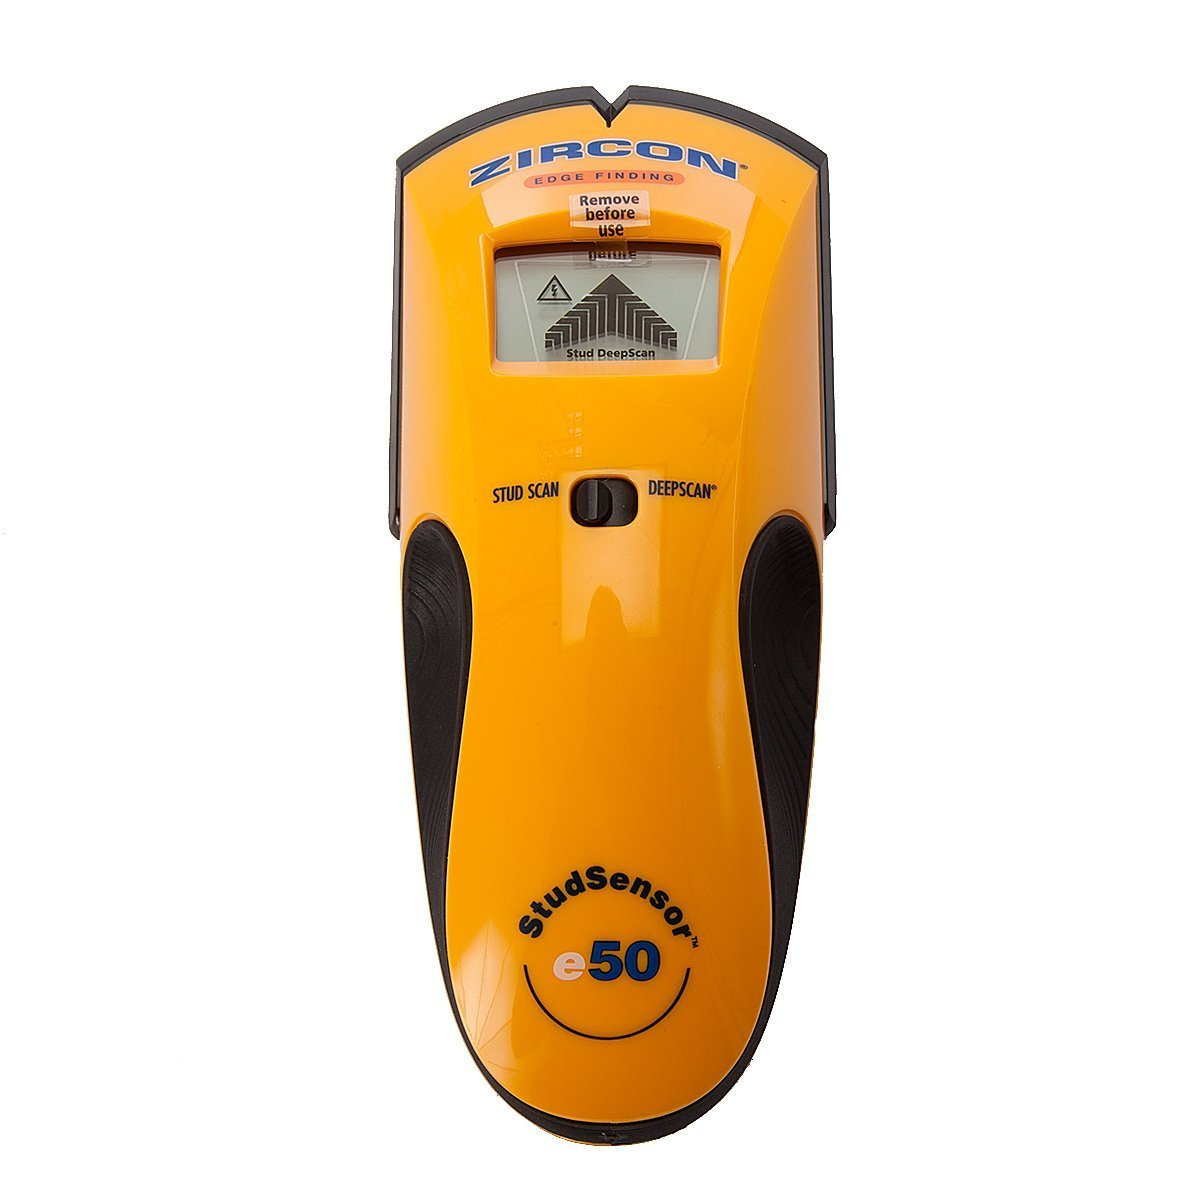 Wall Scanner, Multi Function Center Wall finder, Finding Stud Metal with Sound Warning for AC Wire, Metal, Wall Studs, Wood